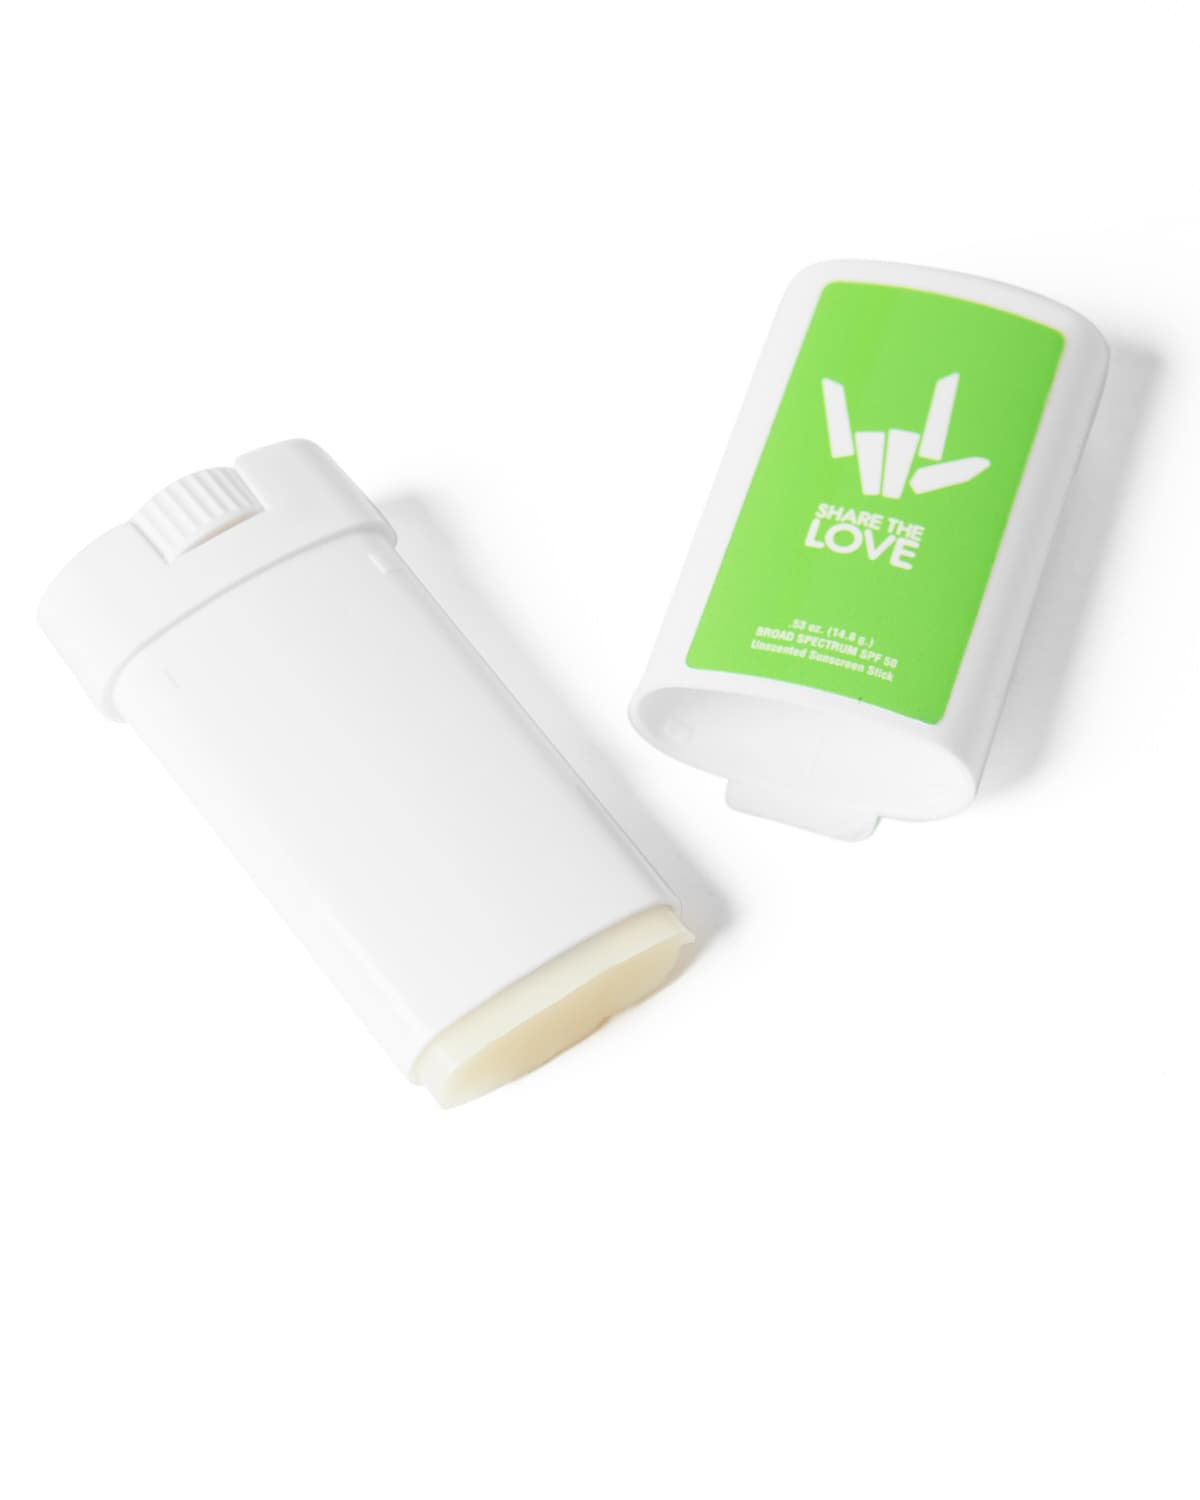 'Share The Love' Sunscreen Stick